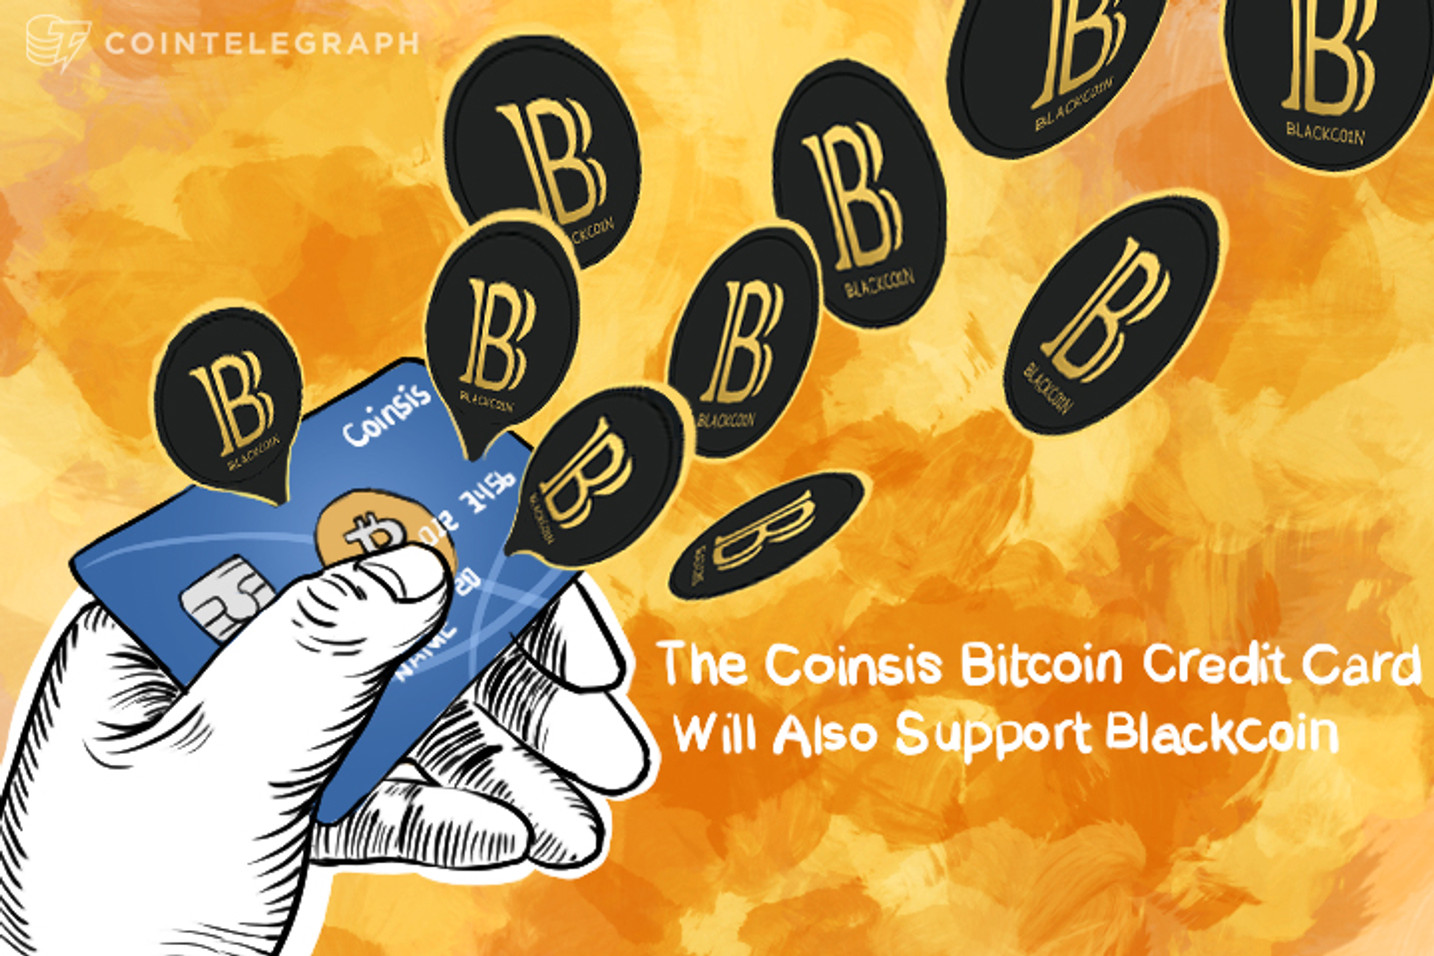 The Coinsis Bitcoin Credit Card Will Also Support Blackcoin